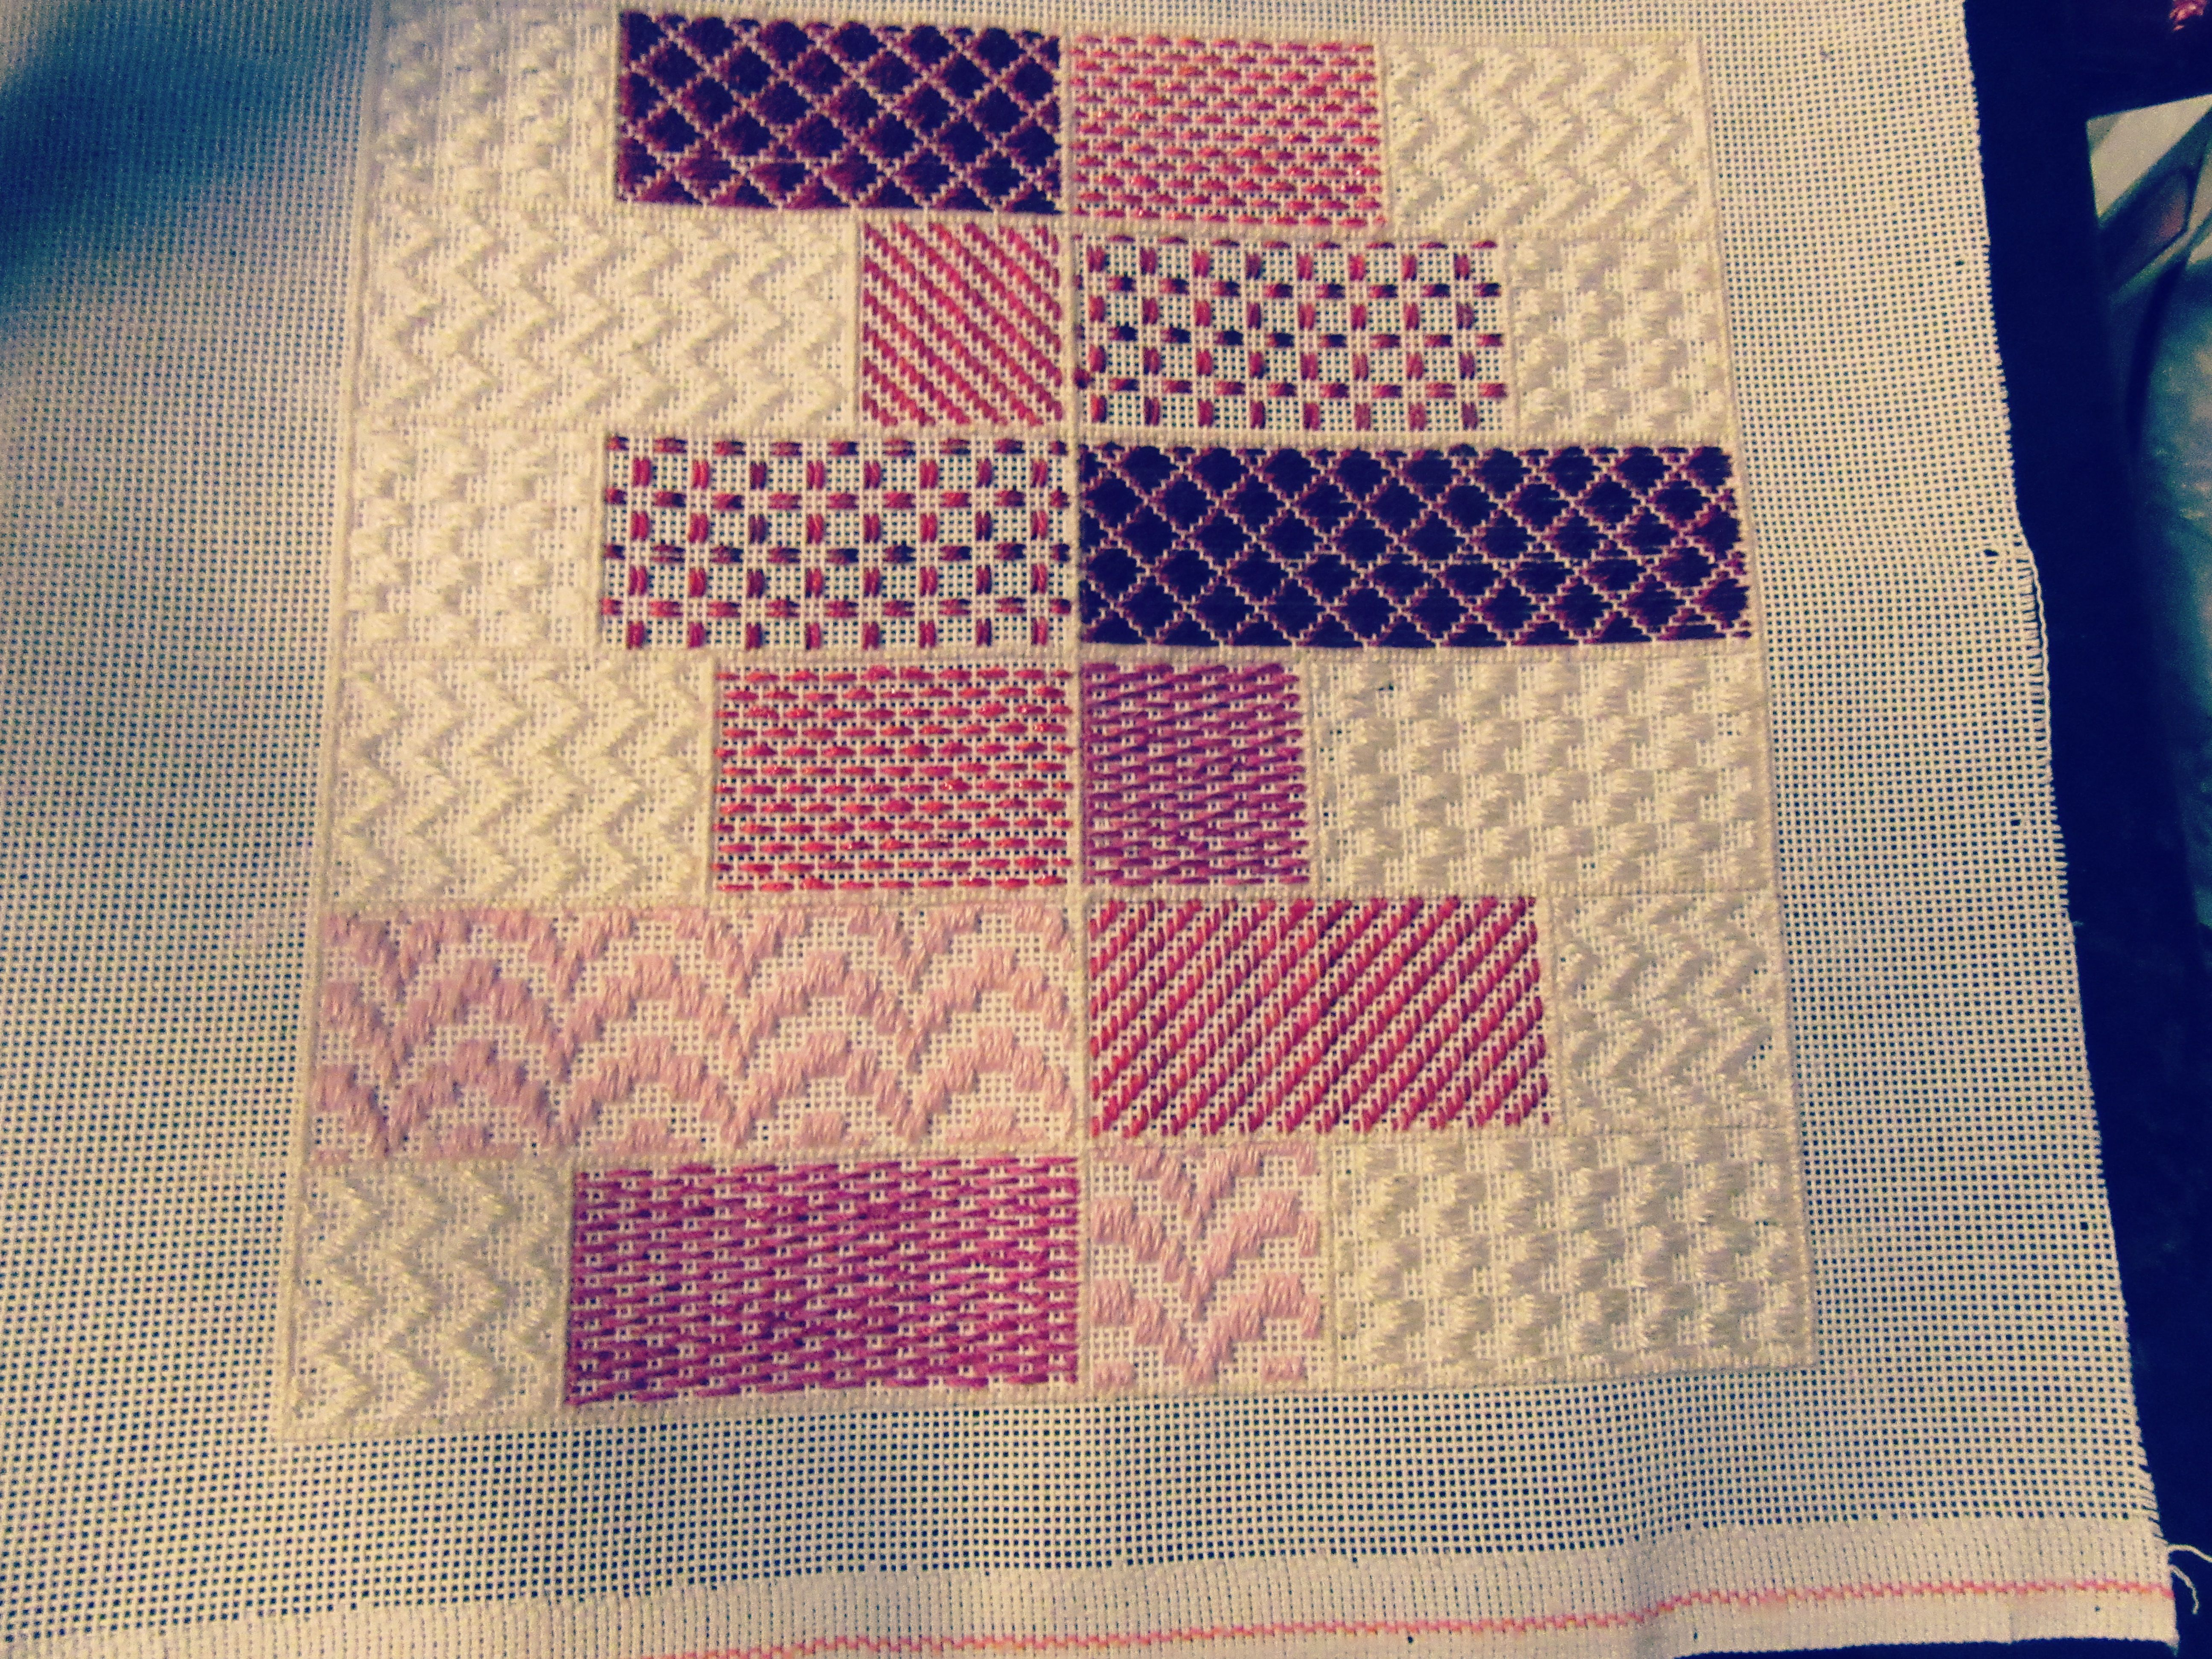 25 More Darning Patterns Class Open for Registration